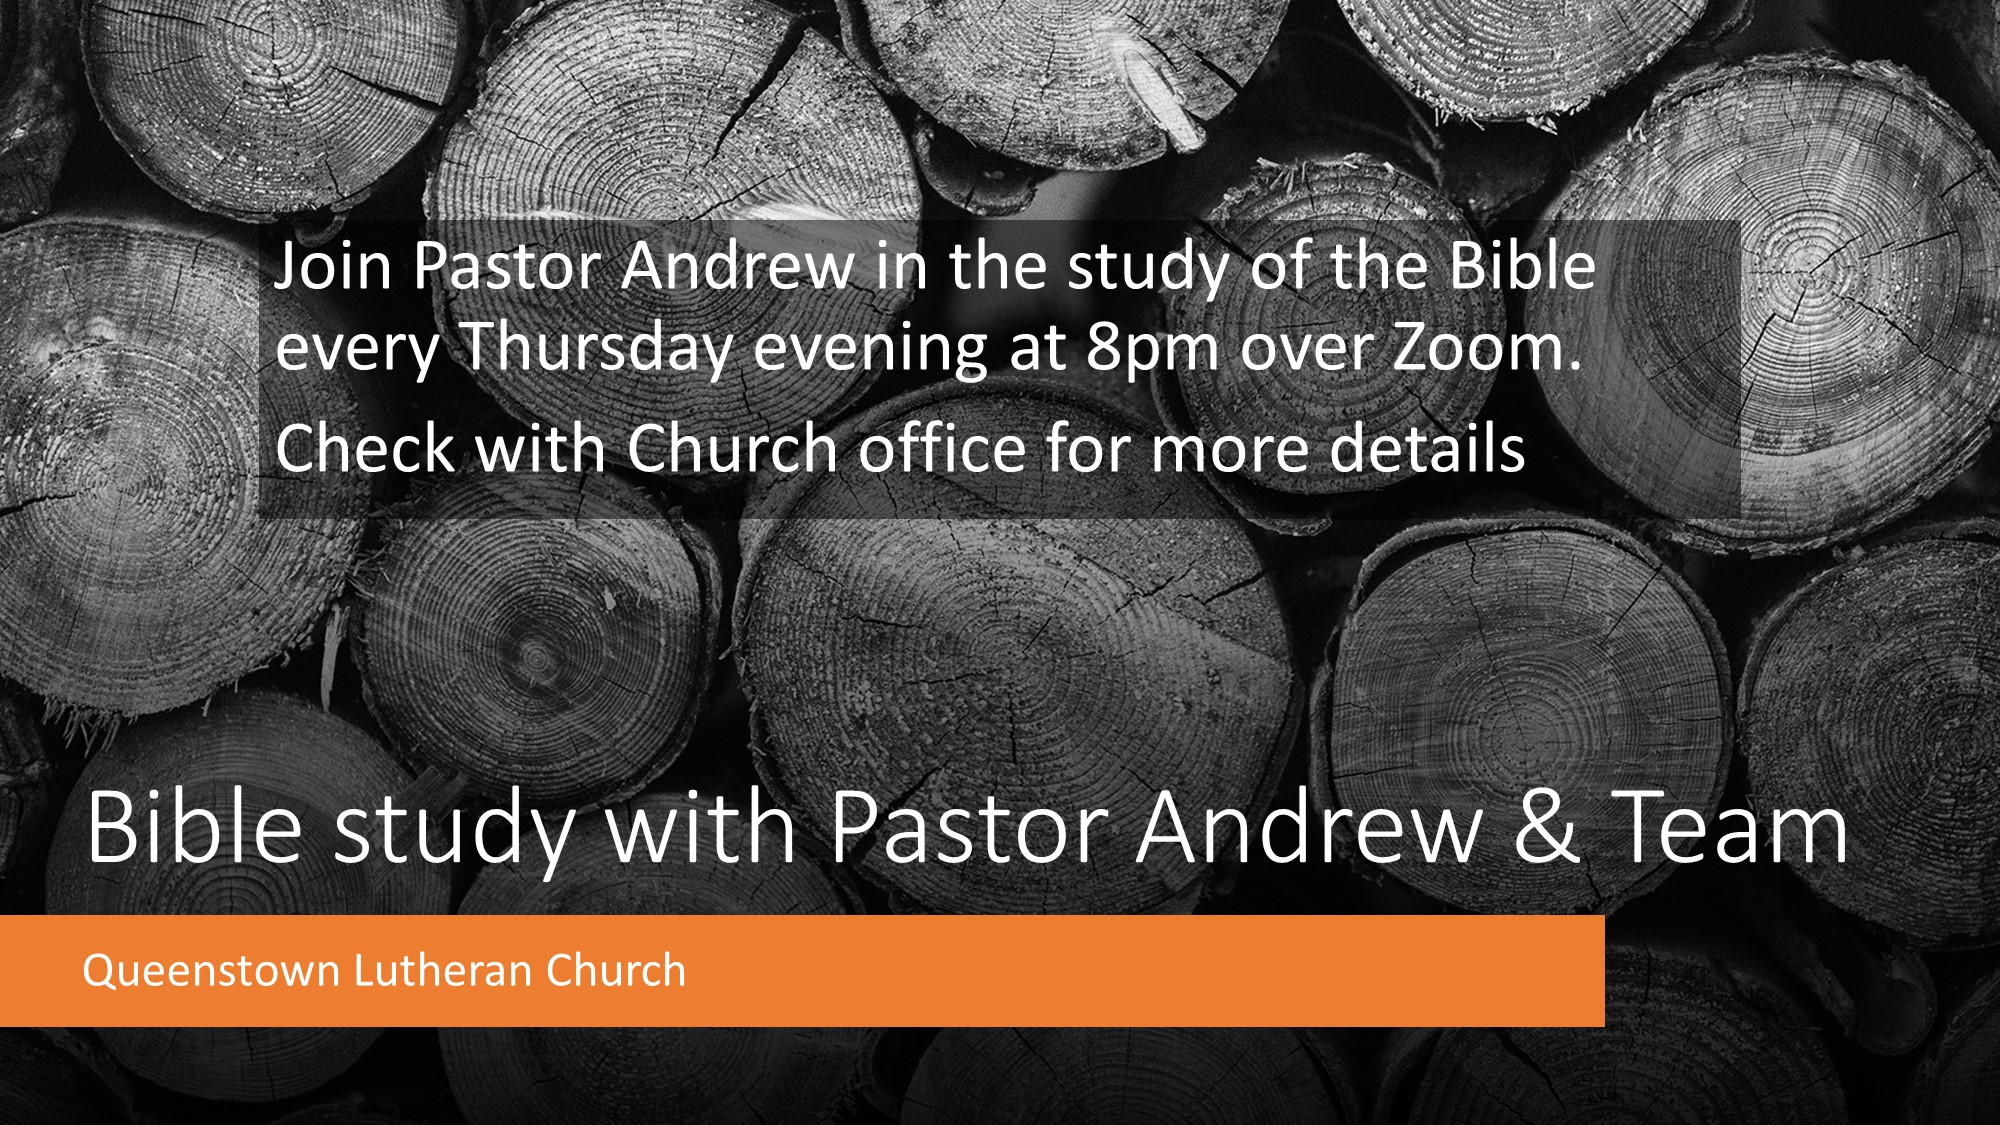 Bible study with Pastor Andrew